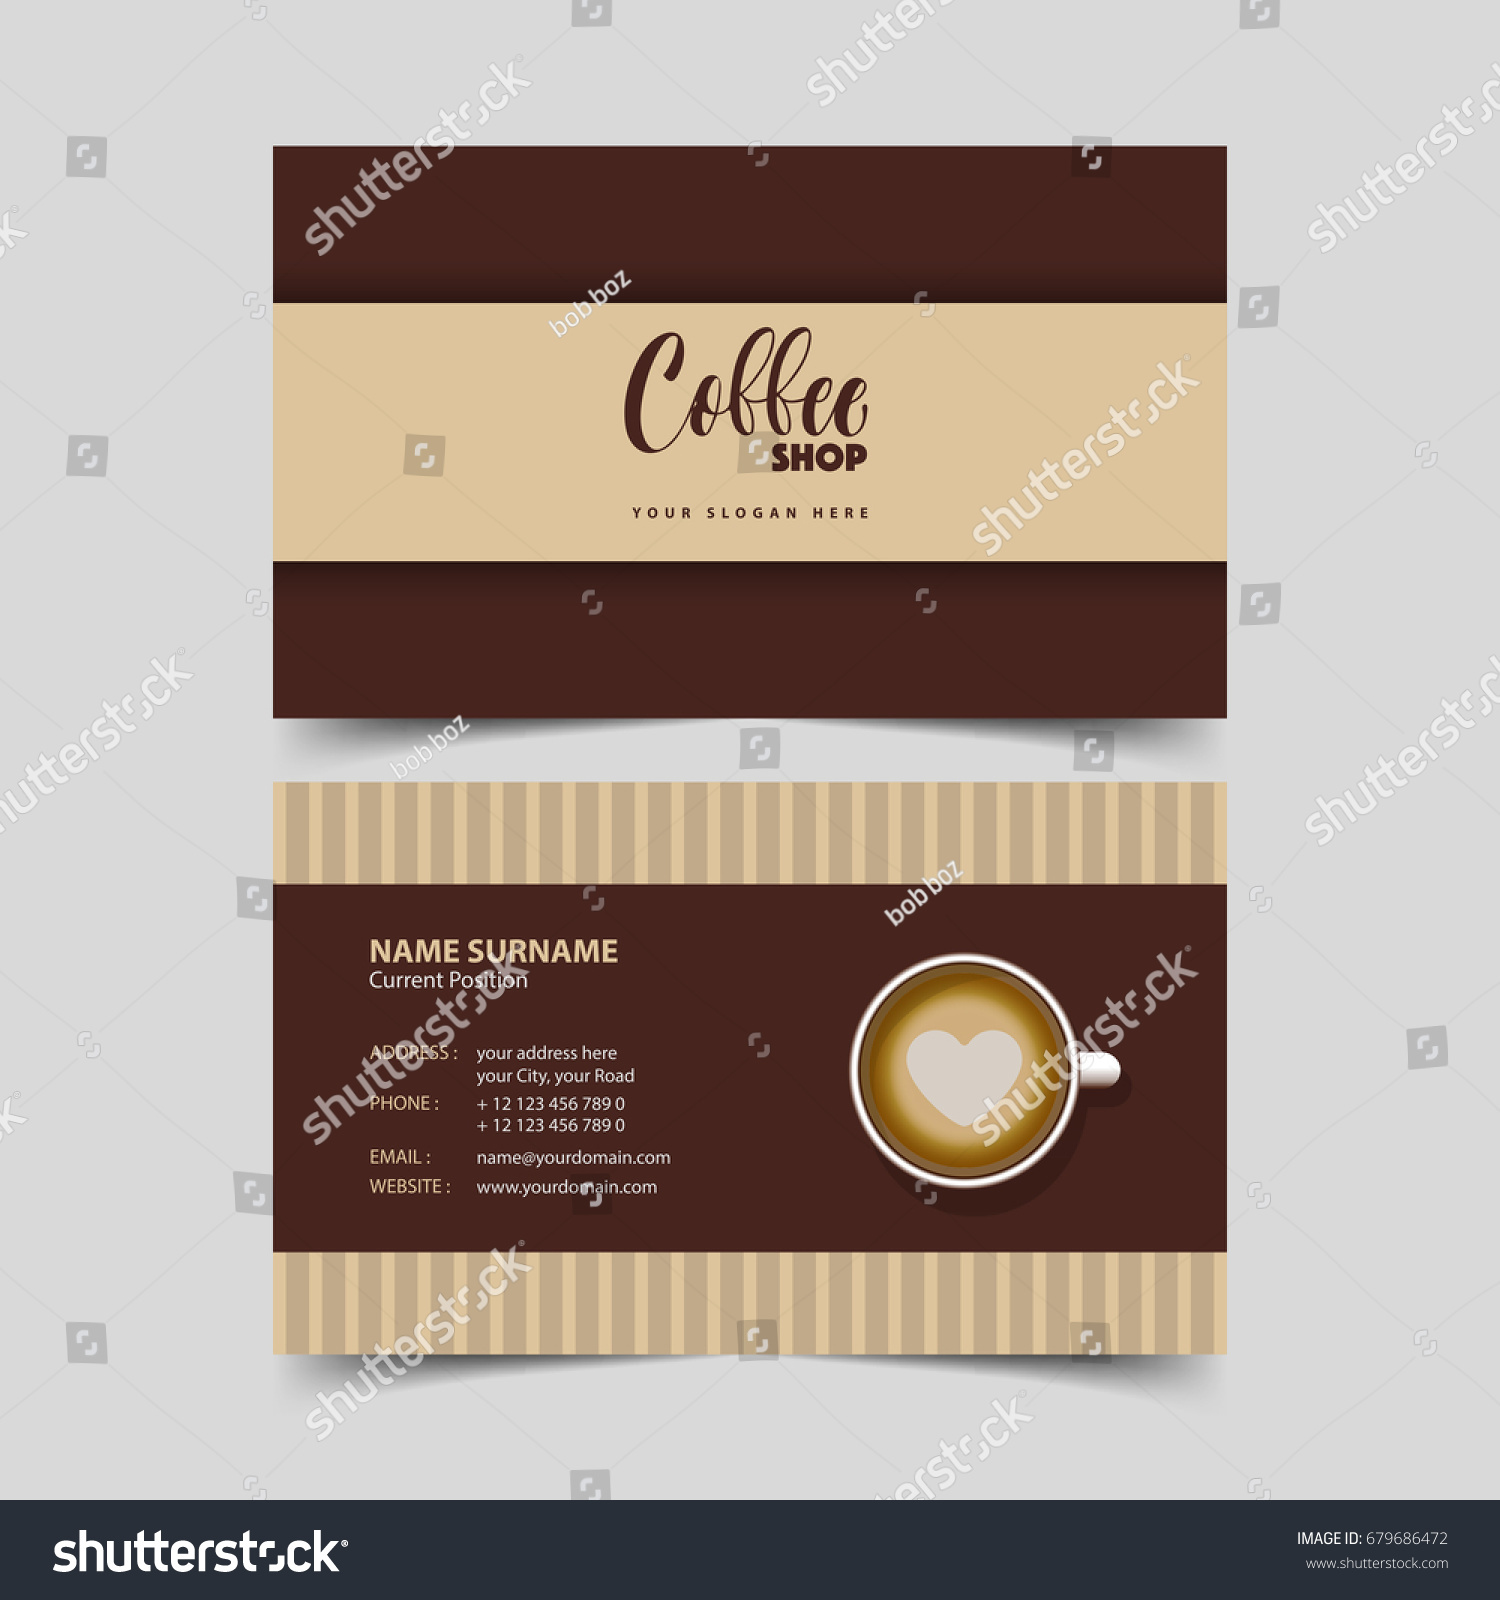 Coffee business card template free mandegarfo coffee business card template free friedricerecipe Image collections